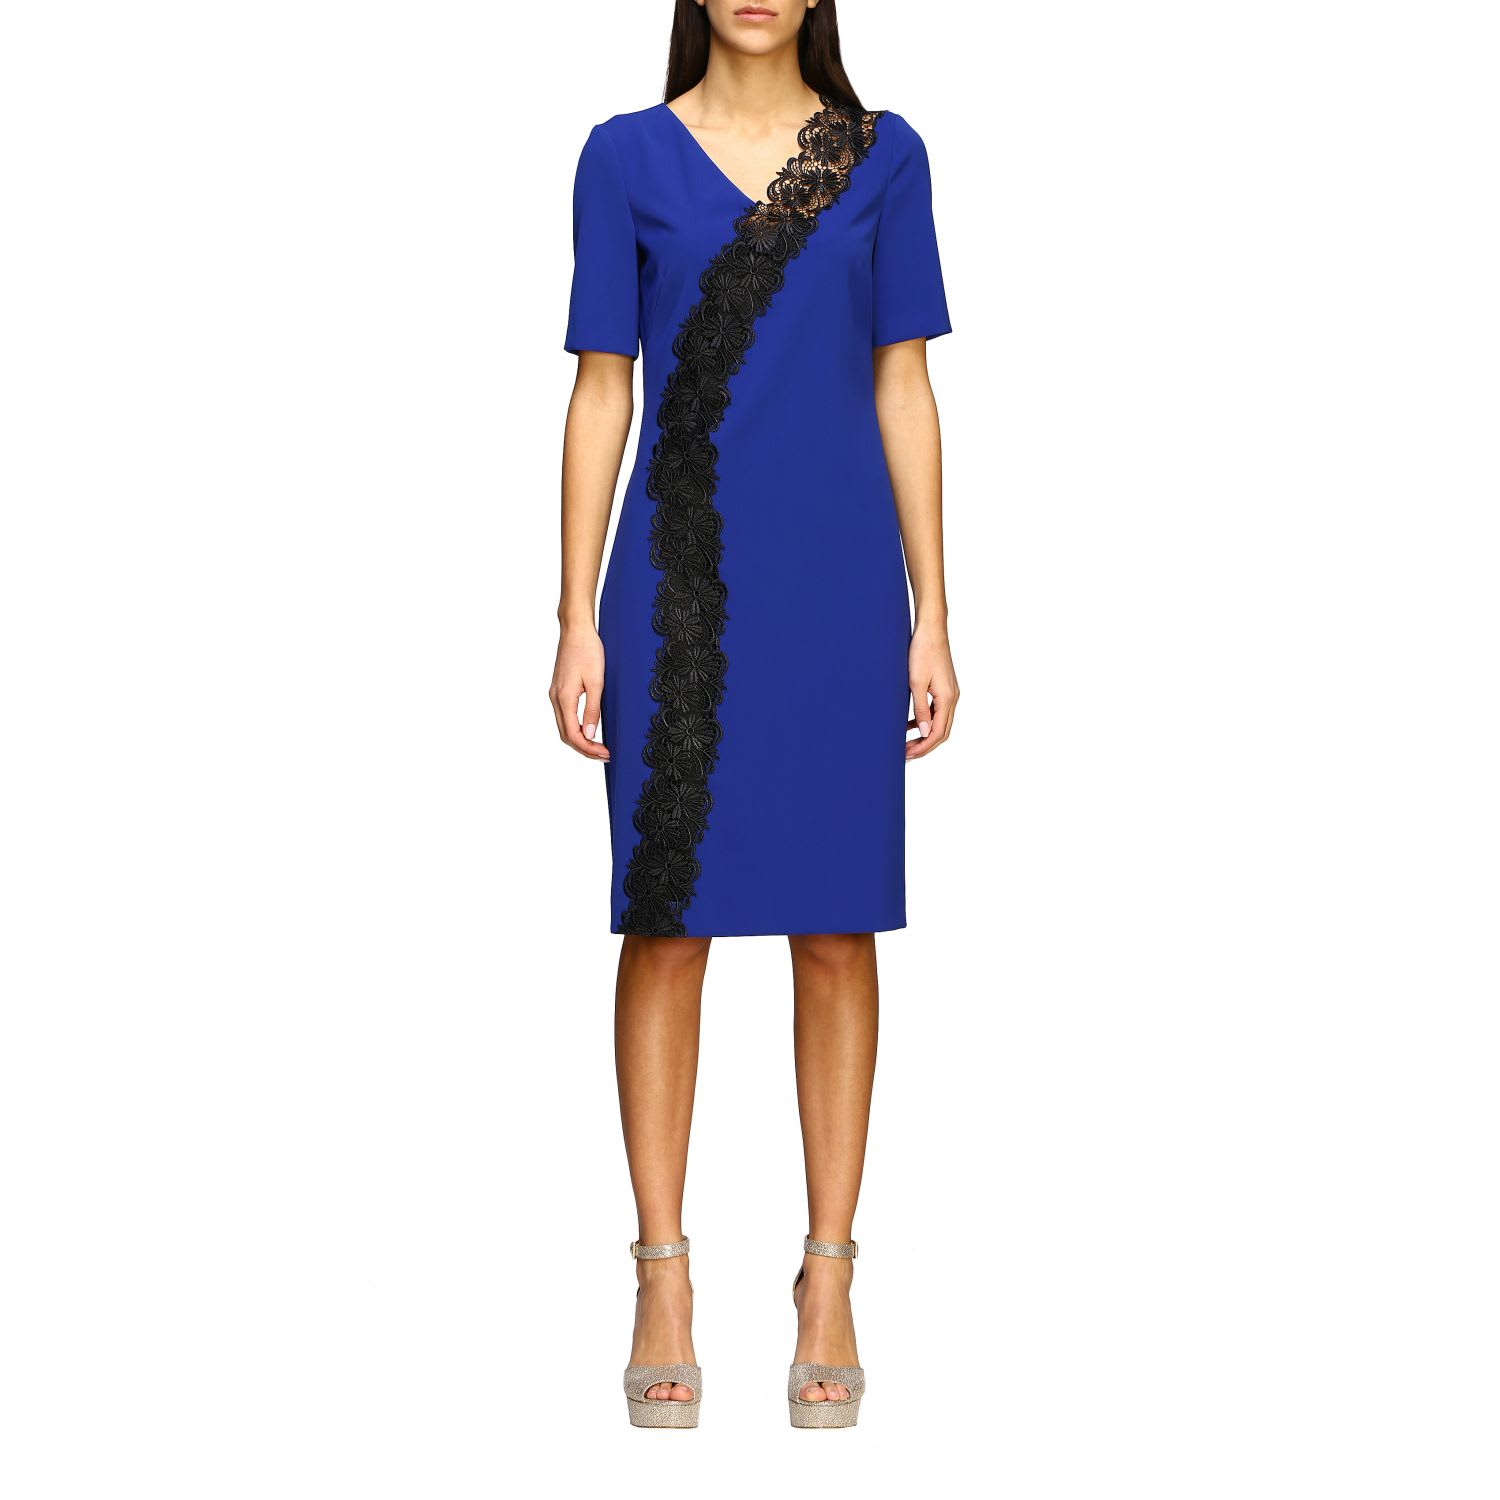 Buy Boutique Moschino Dress Boutique Moschino Stretch Cady Sheath Dress With Macramé Insert online, shop Boutique Moschino with free shipping